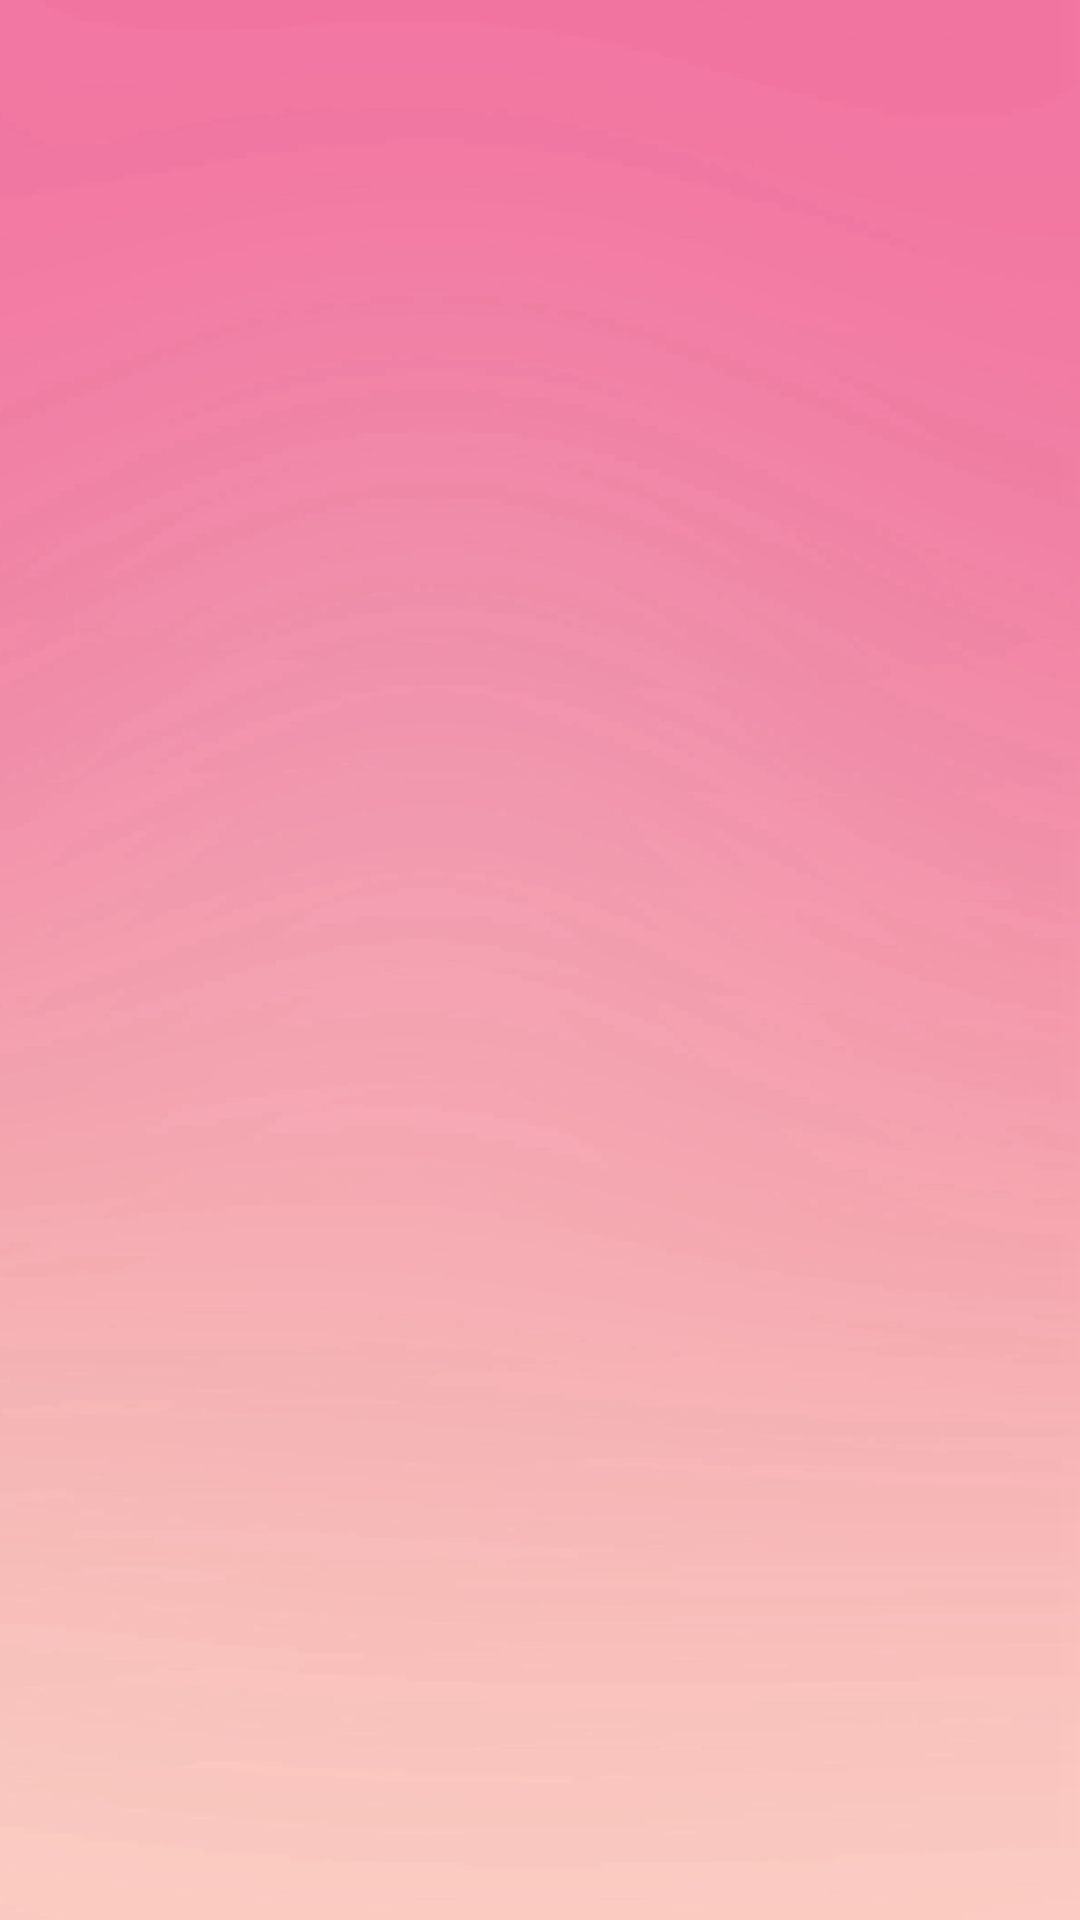 Pink Yellow Gradation Blur iPhone 6 wallpaper DRESS YOUR